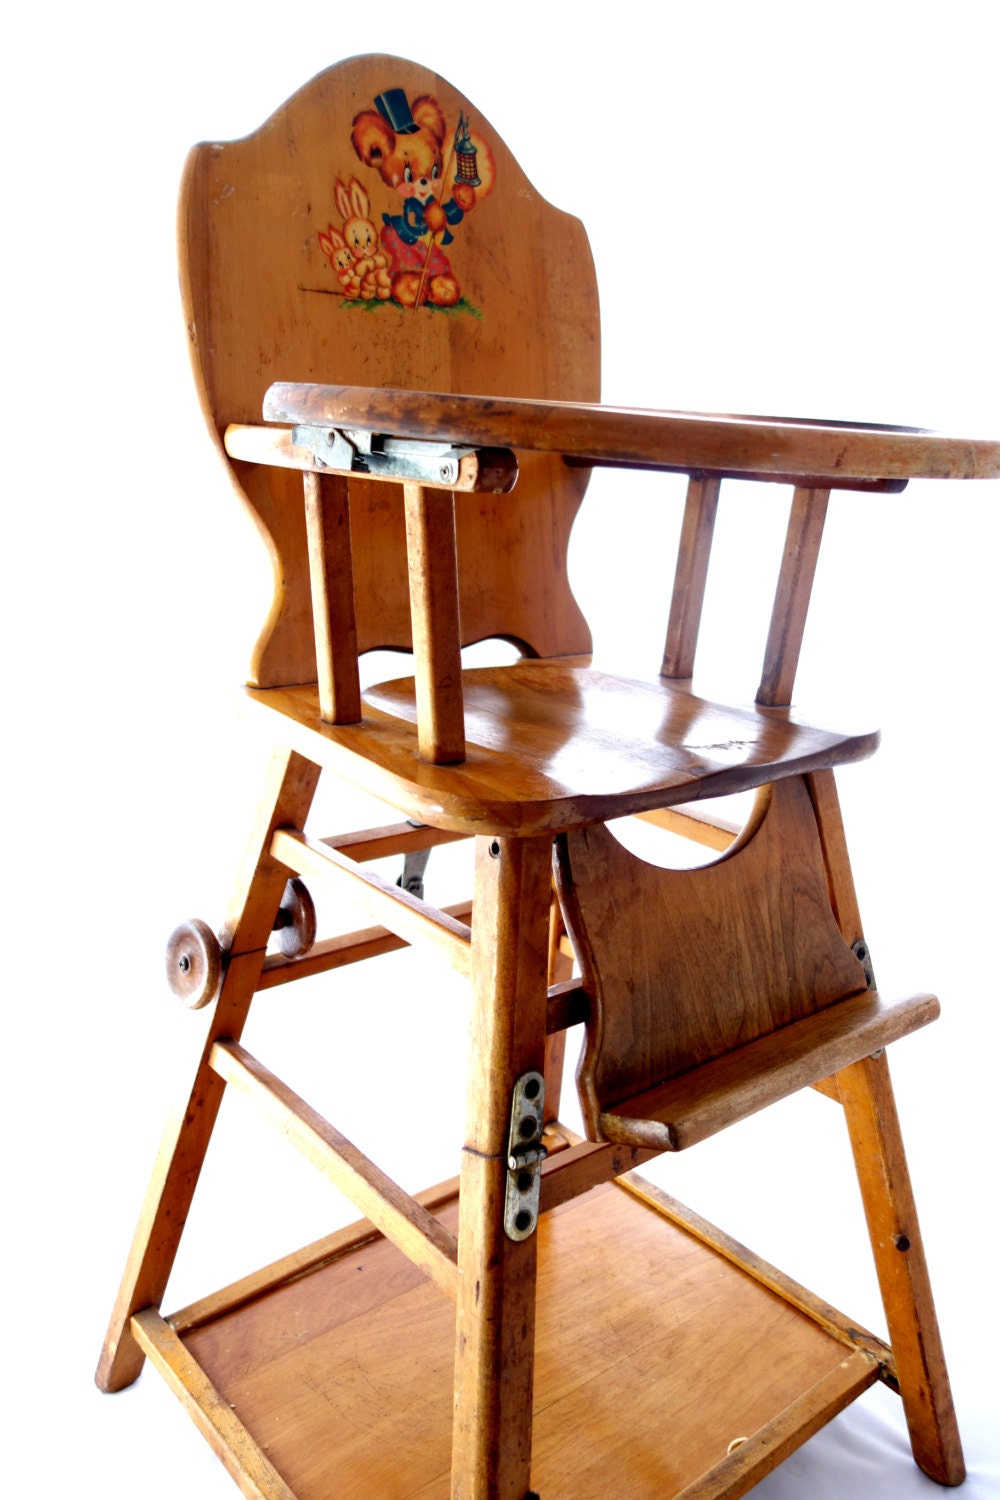 Vintage Baby High Chair Converts To Low Play By ProsserBrosVtg